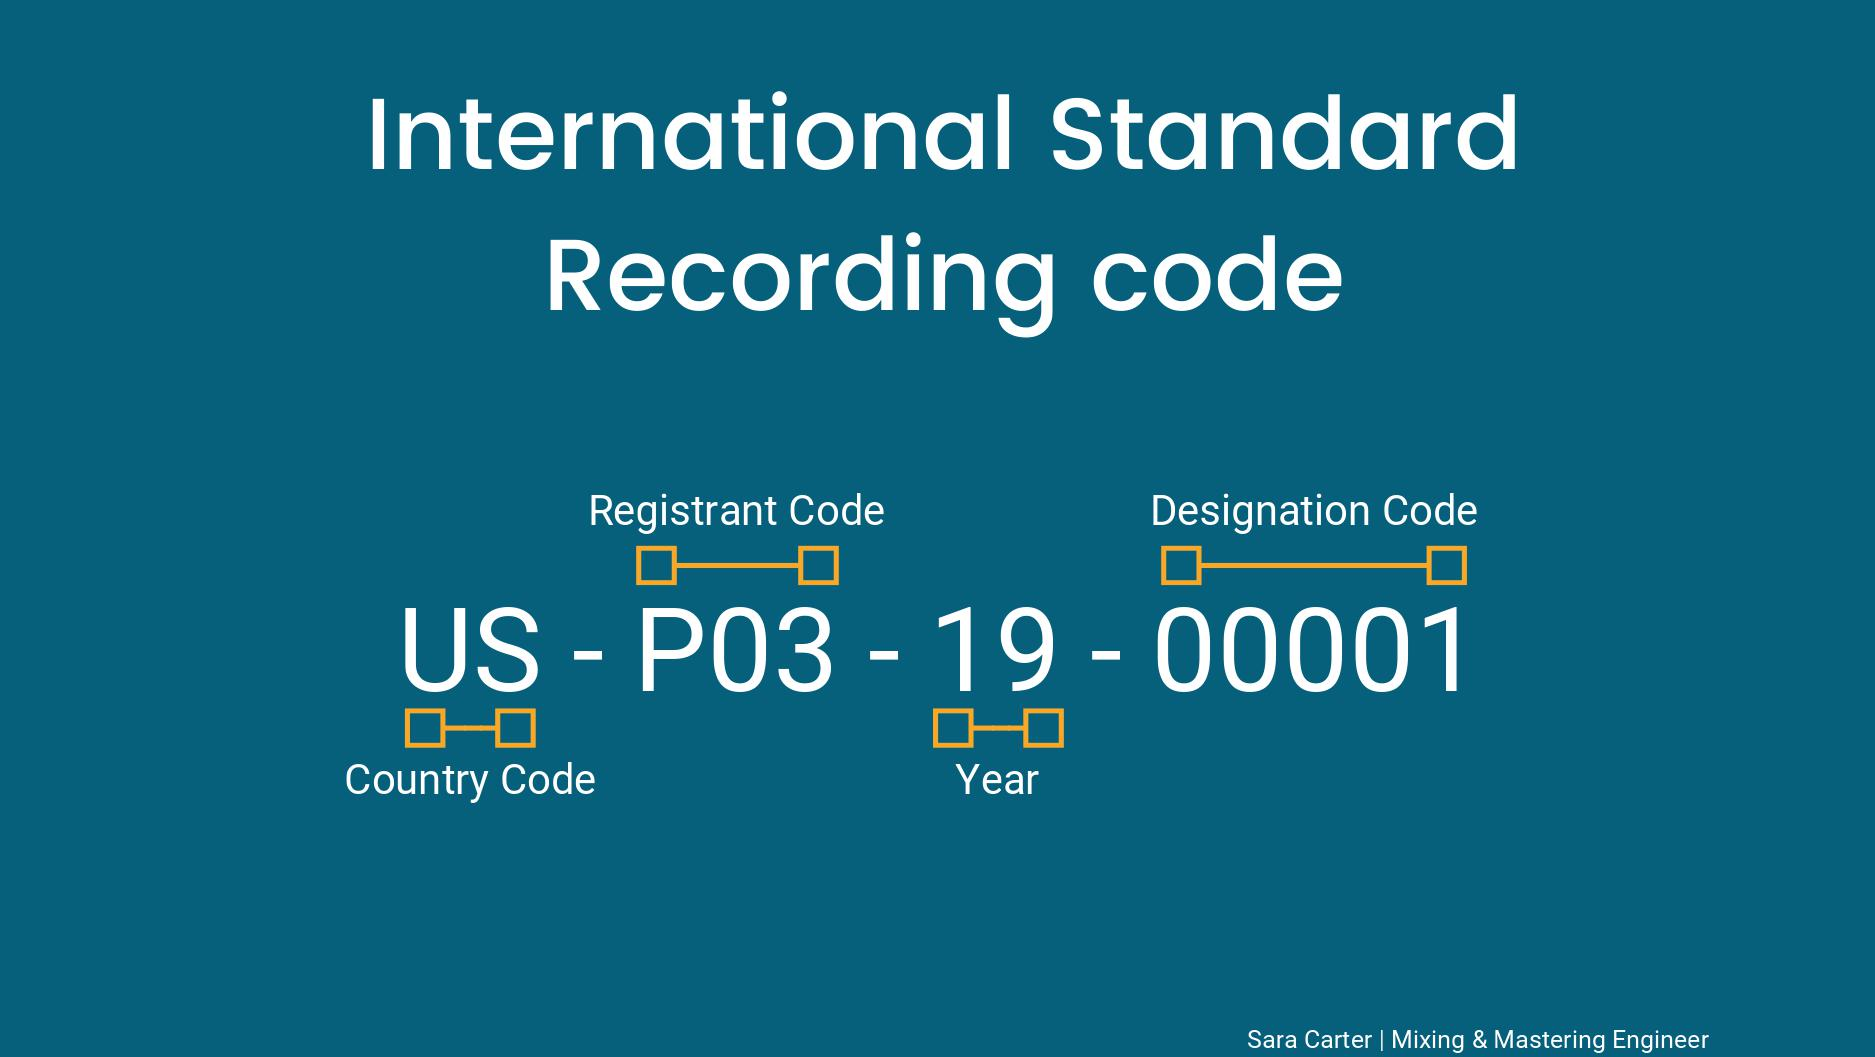 isrc code meaning in mastering